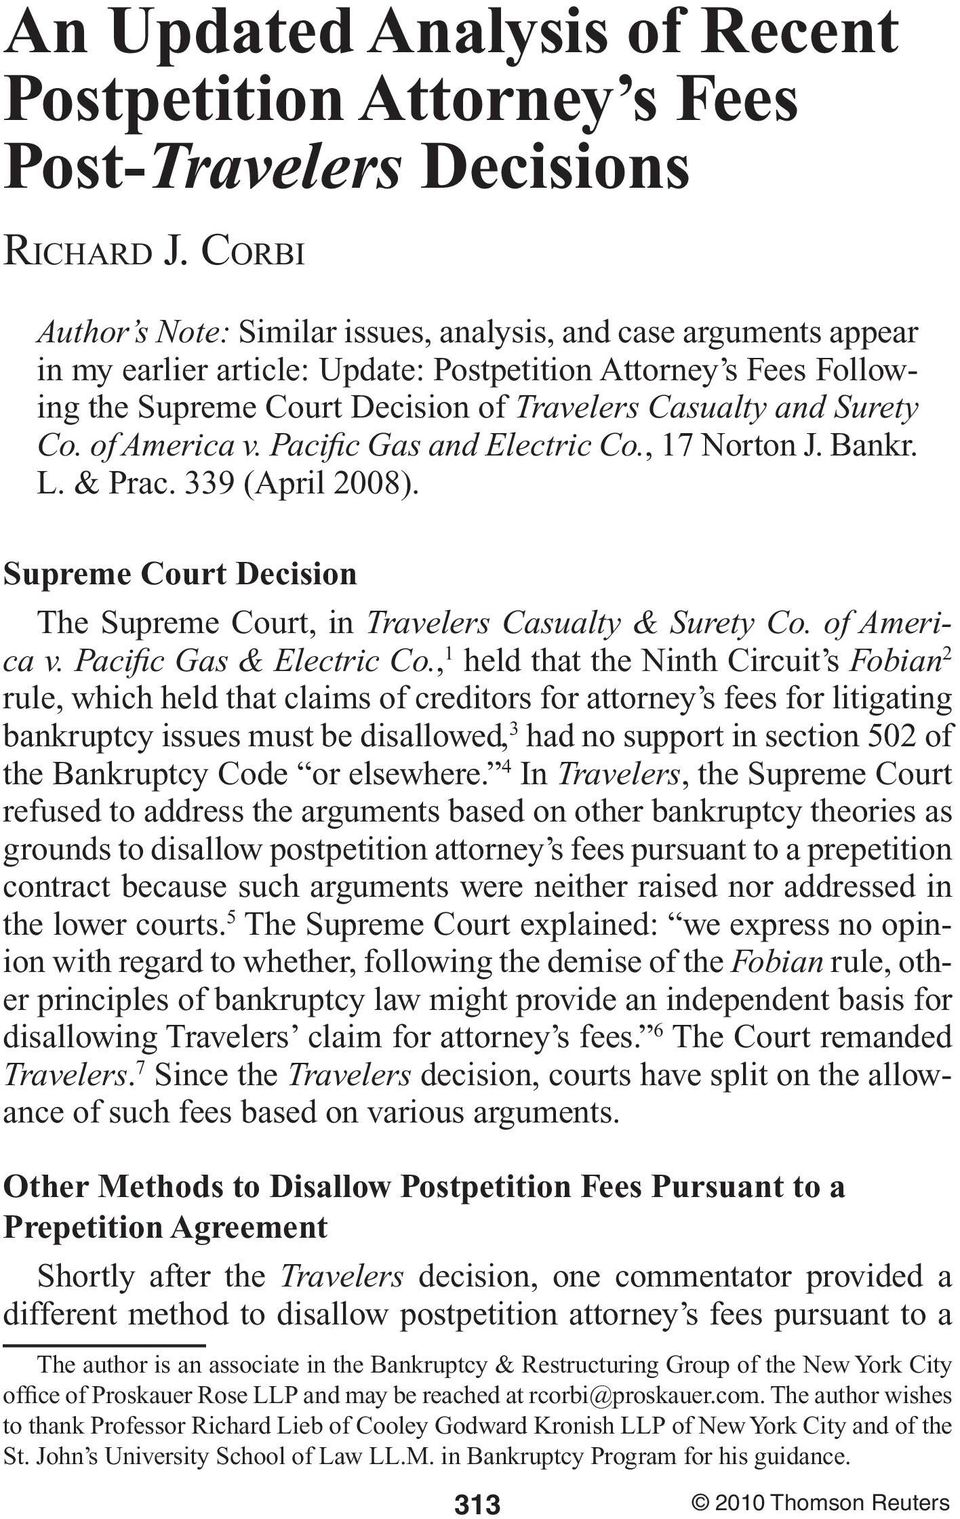 Surety Co. of America v. Pacific Gas and Electric Co., 17 Norton J. Bankr. L. & Prac. 339 (April 2008). Supreme Court Decision The Supreme Court, in Travelers Casualty & Surety Co. of America v. Pacific Gas & Electric Co.